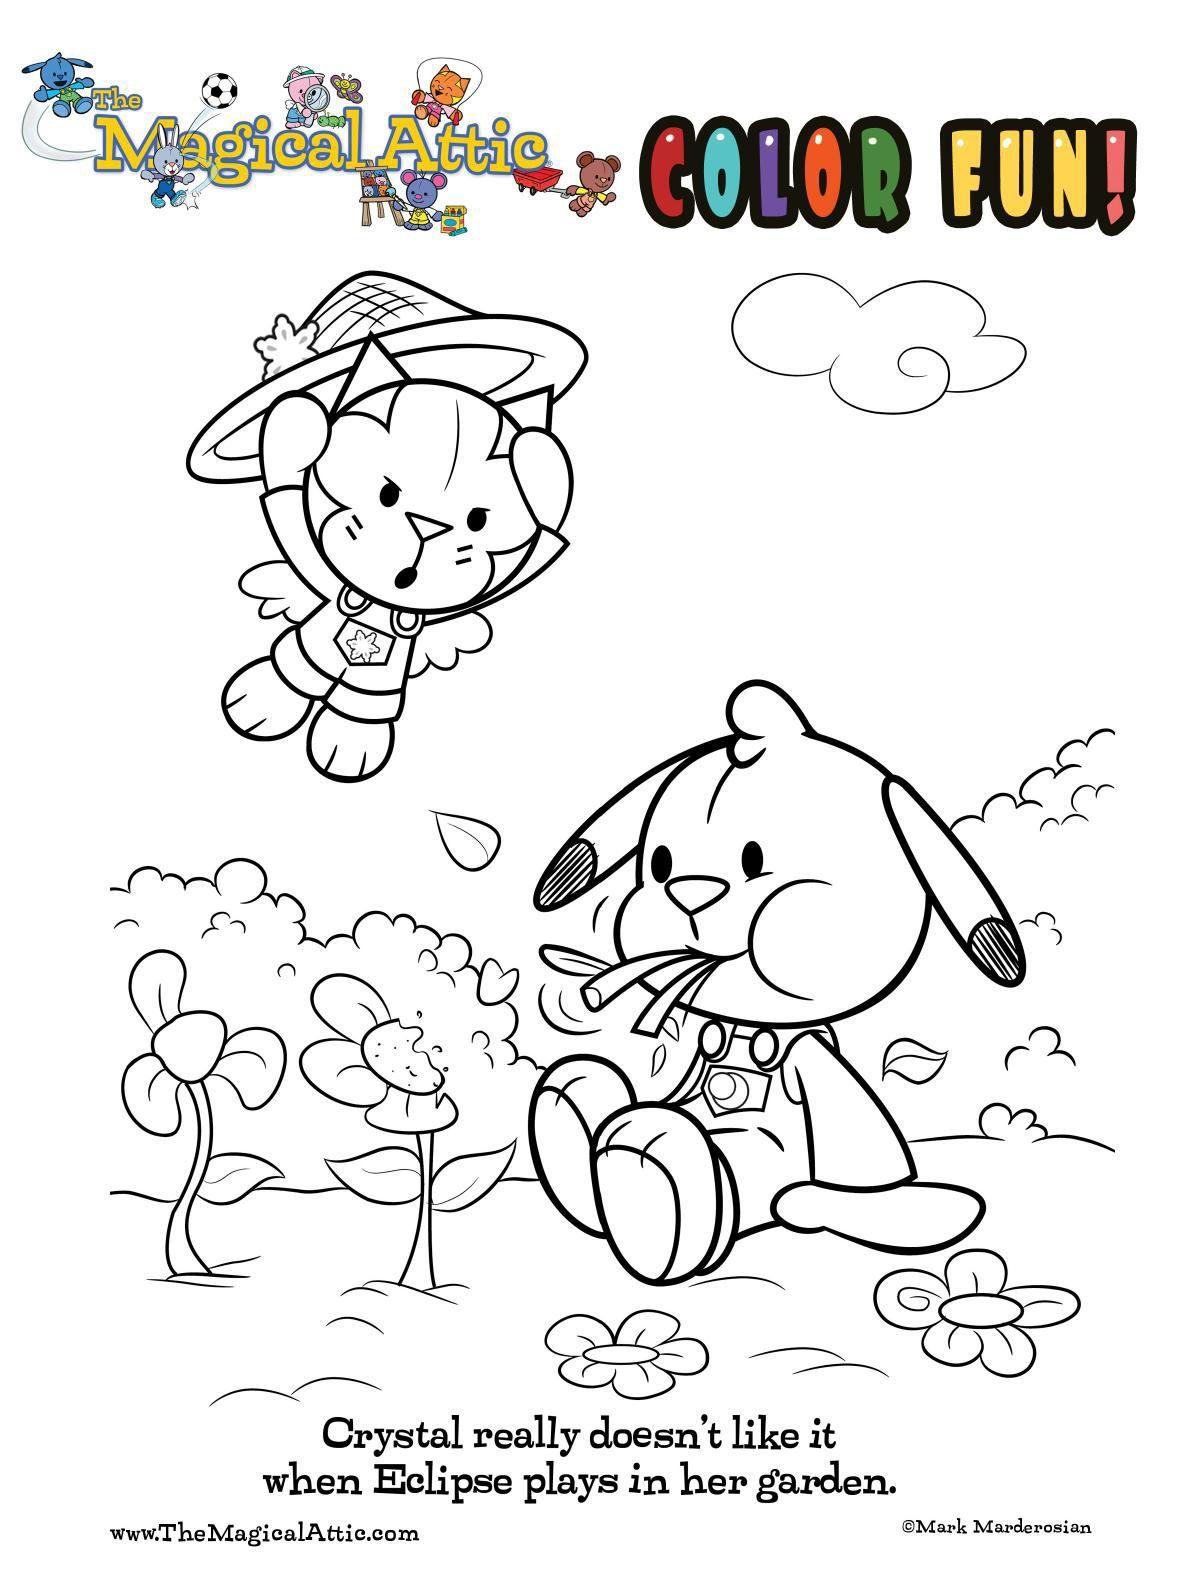 Coloring fun with Crystal Cat